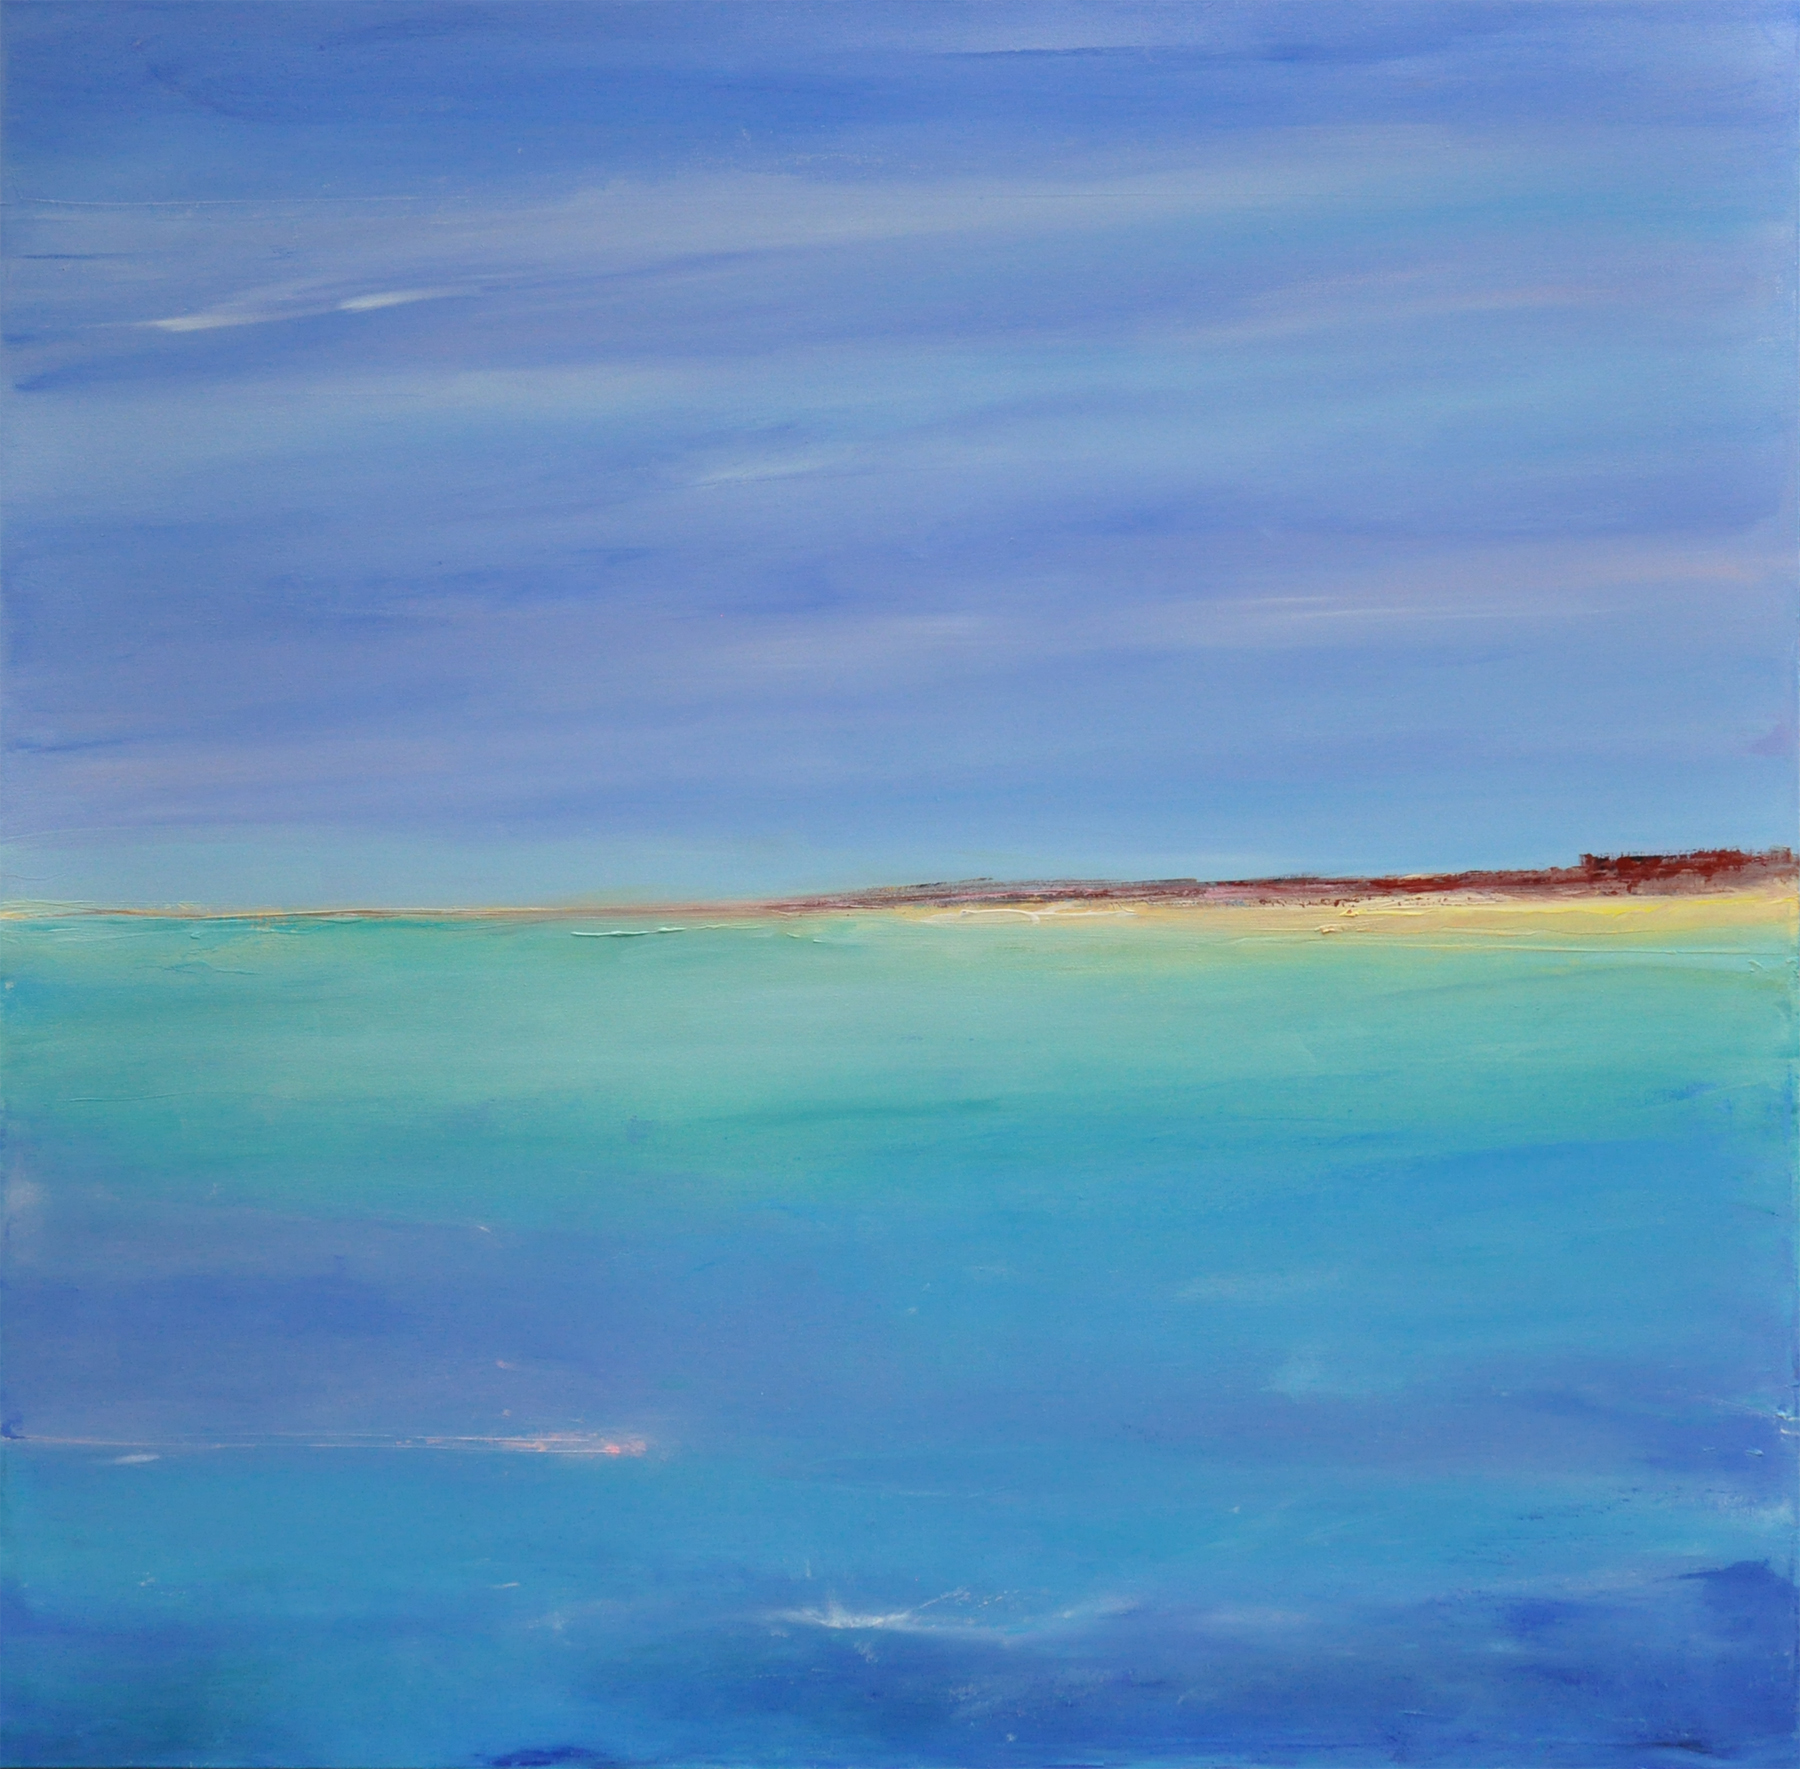 DUNE ON THE CAPE, oil on canvas, 36 x 36 inches, SOLD